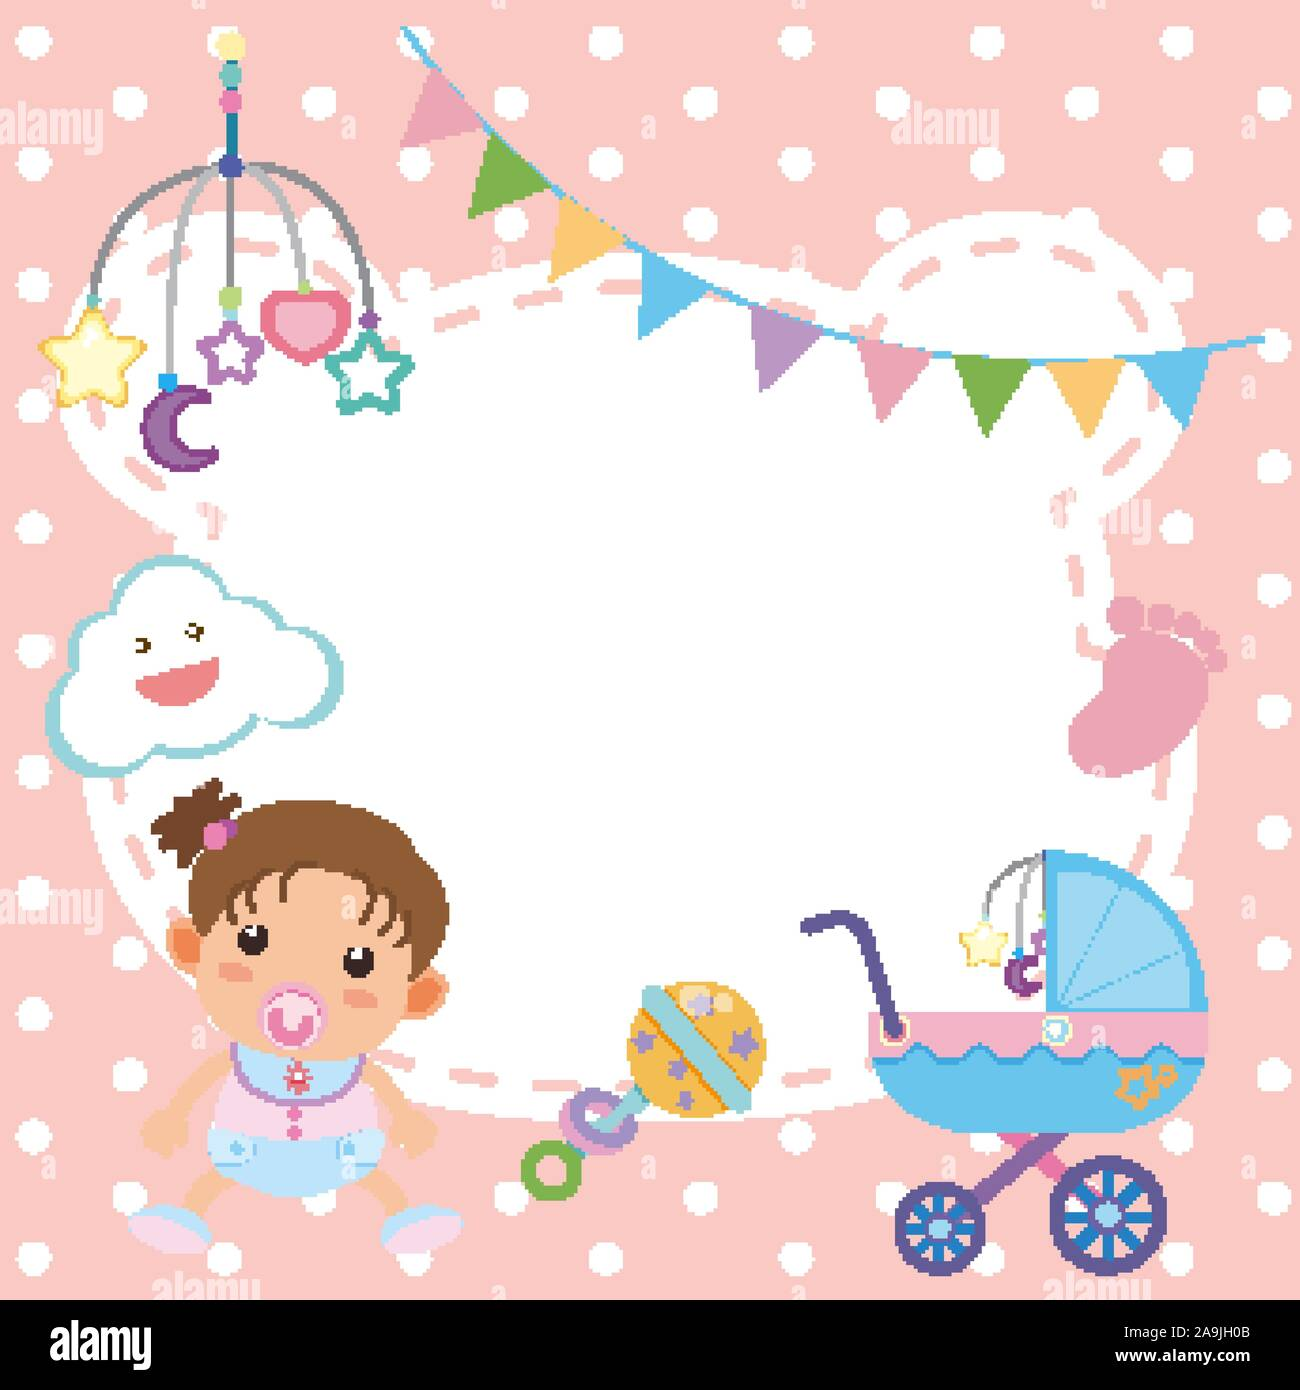 Frame template design with baby girl illustration Stock Vector